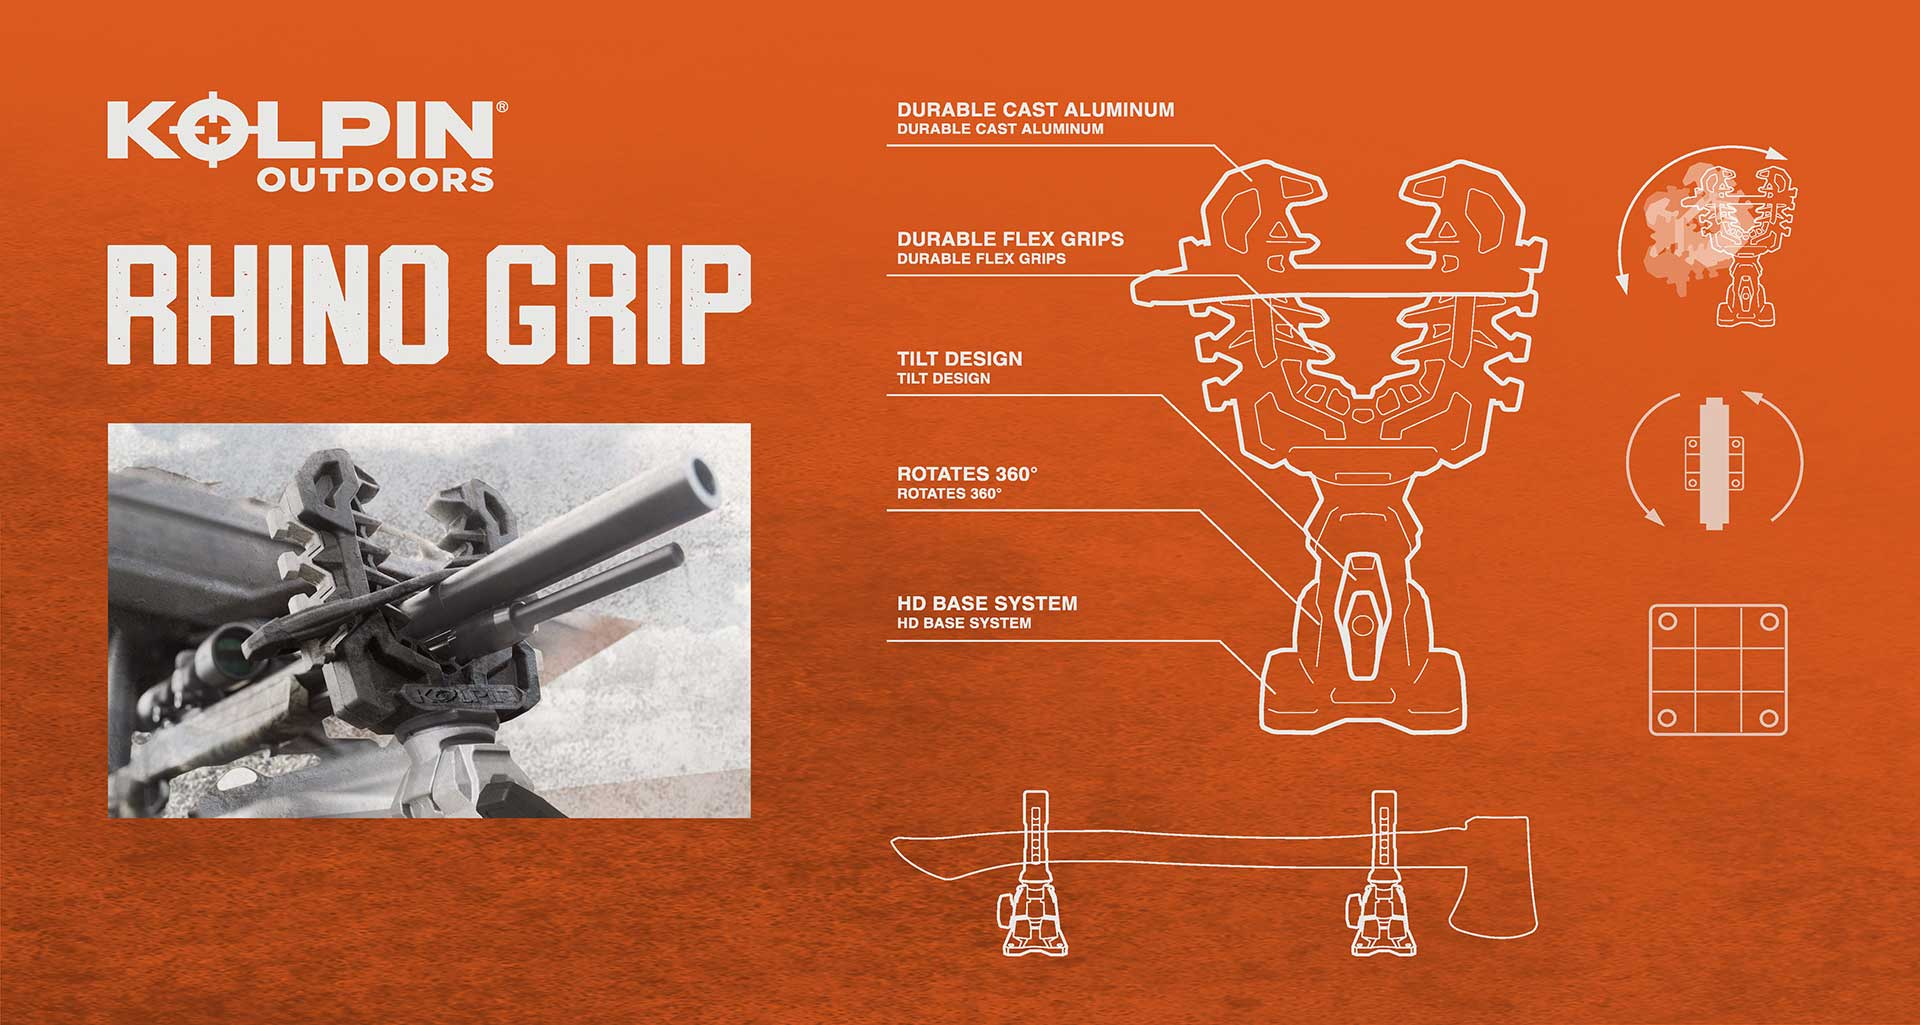 Kolpin Outdoors Brand rhino grips graphic design system